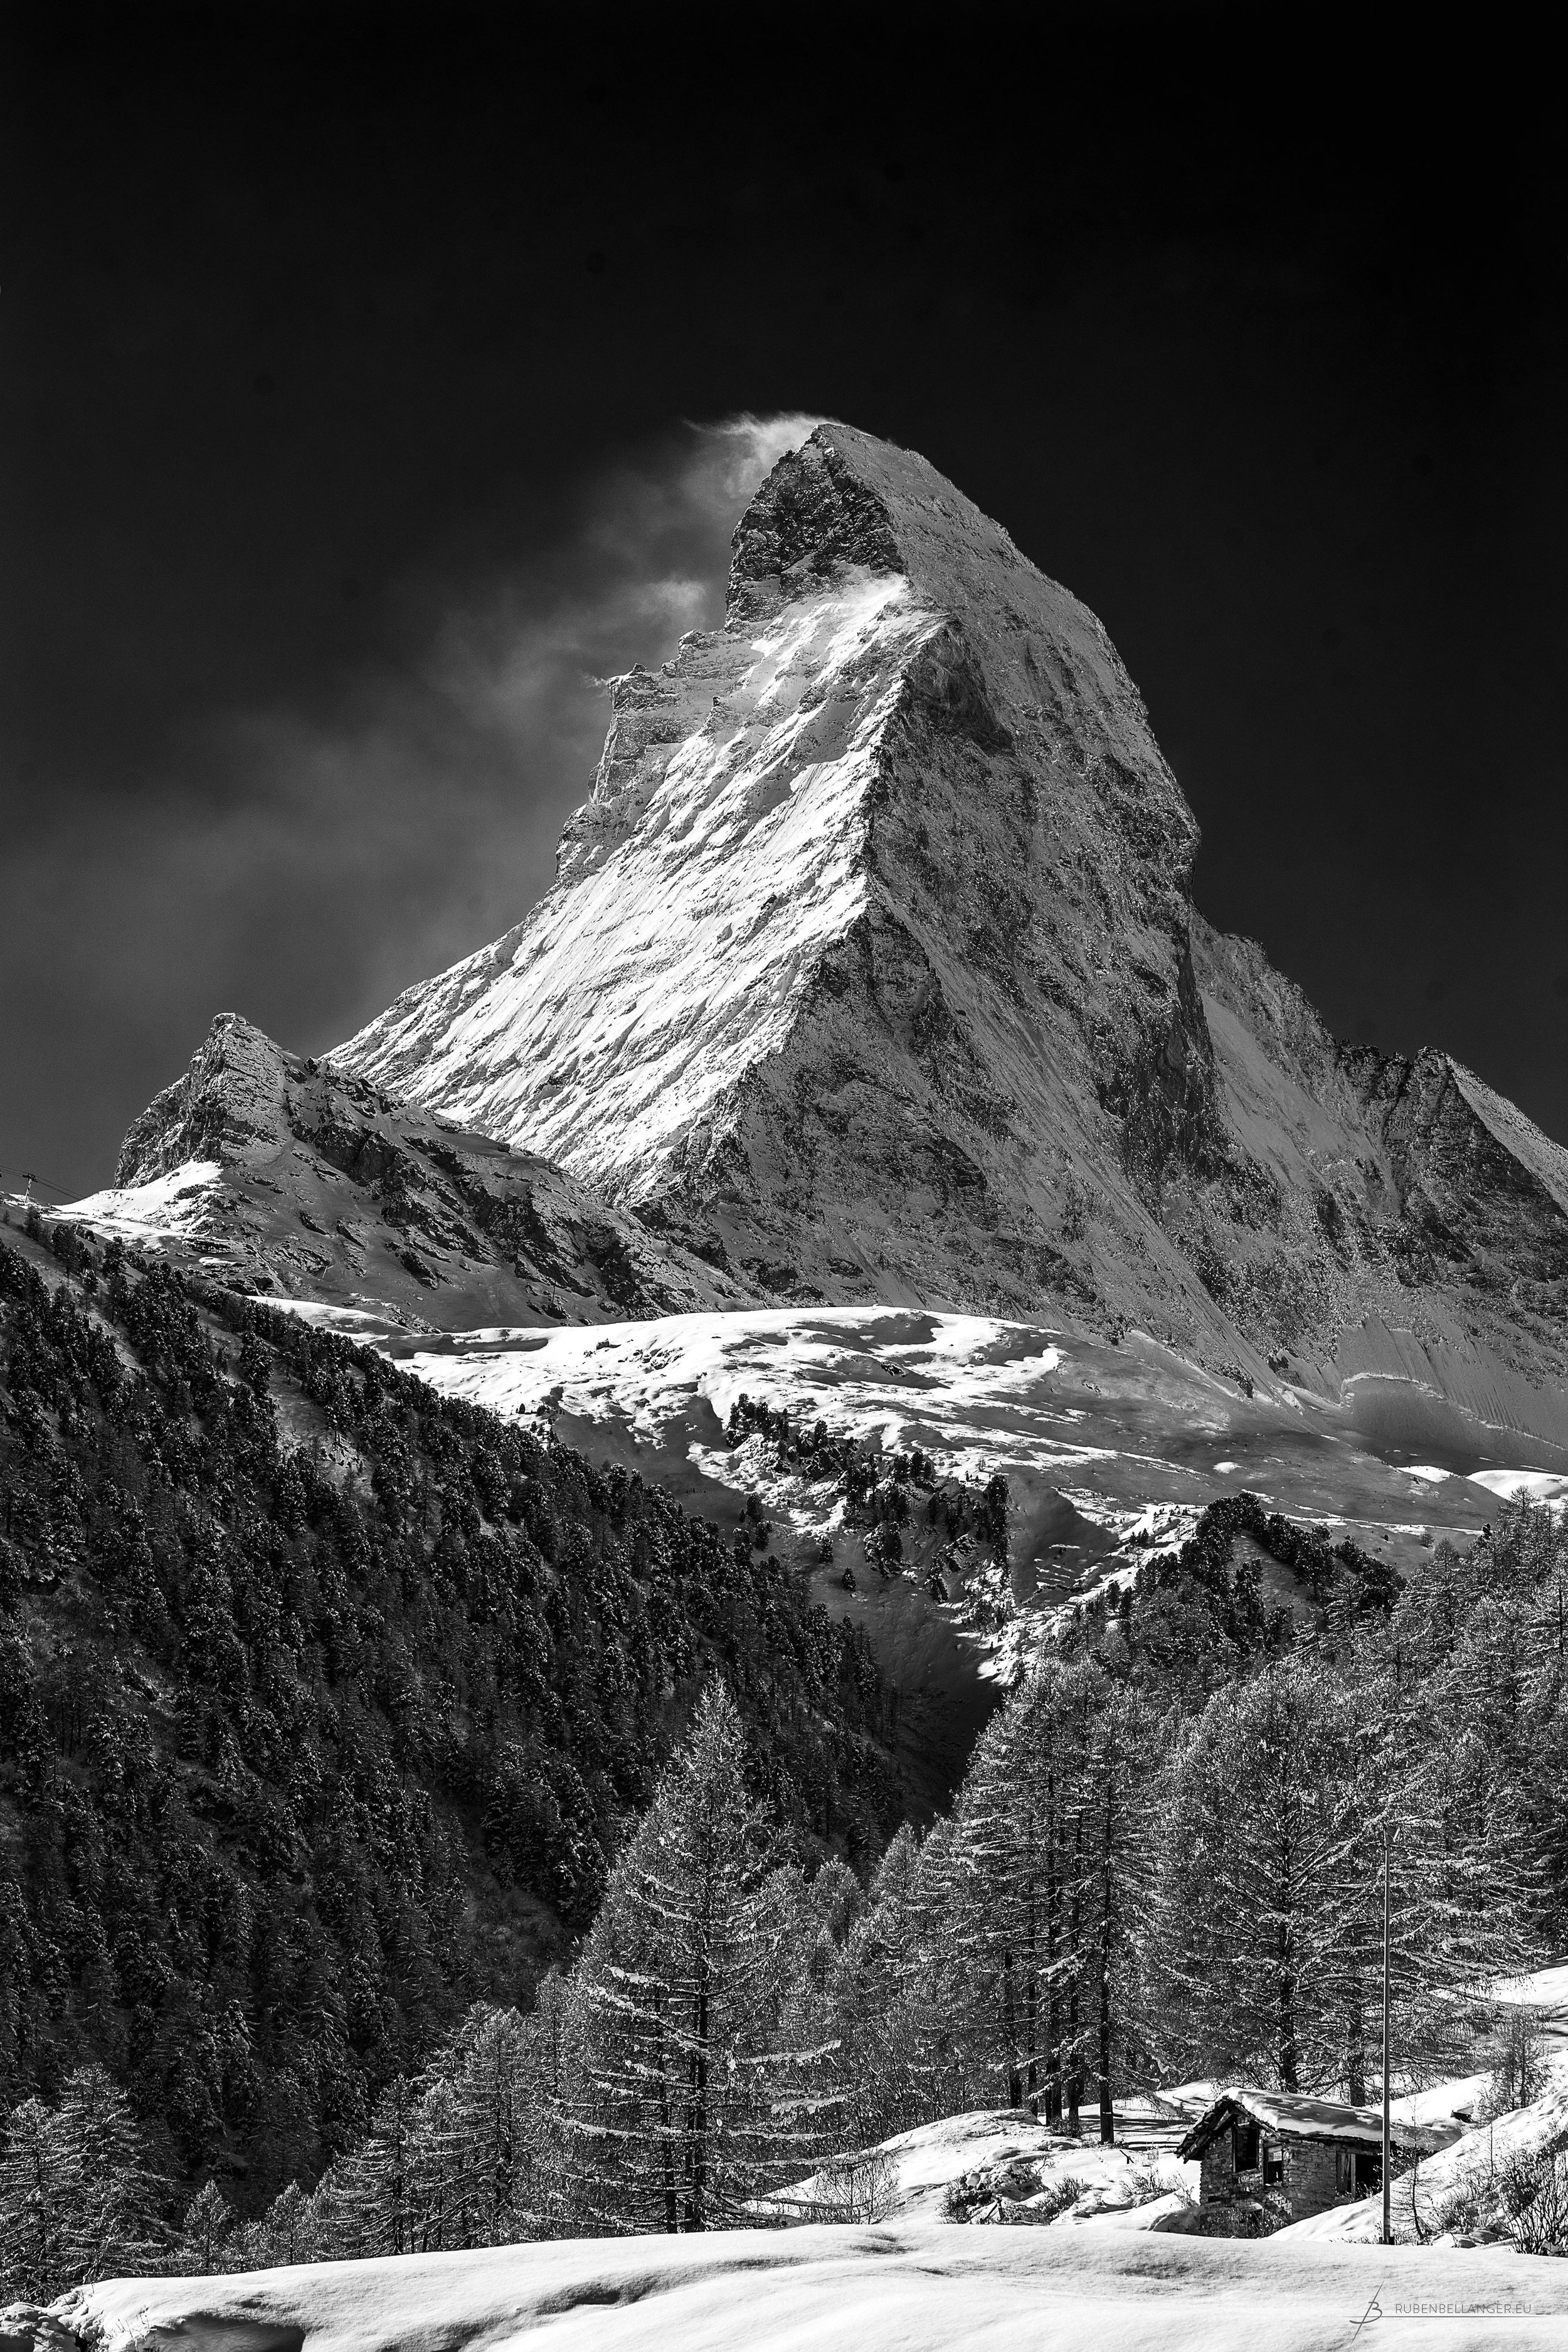 cl_studentwork_mountain_user_generated_content.jpg